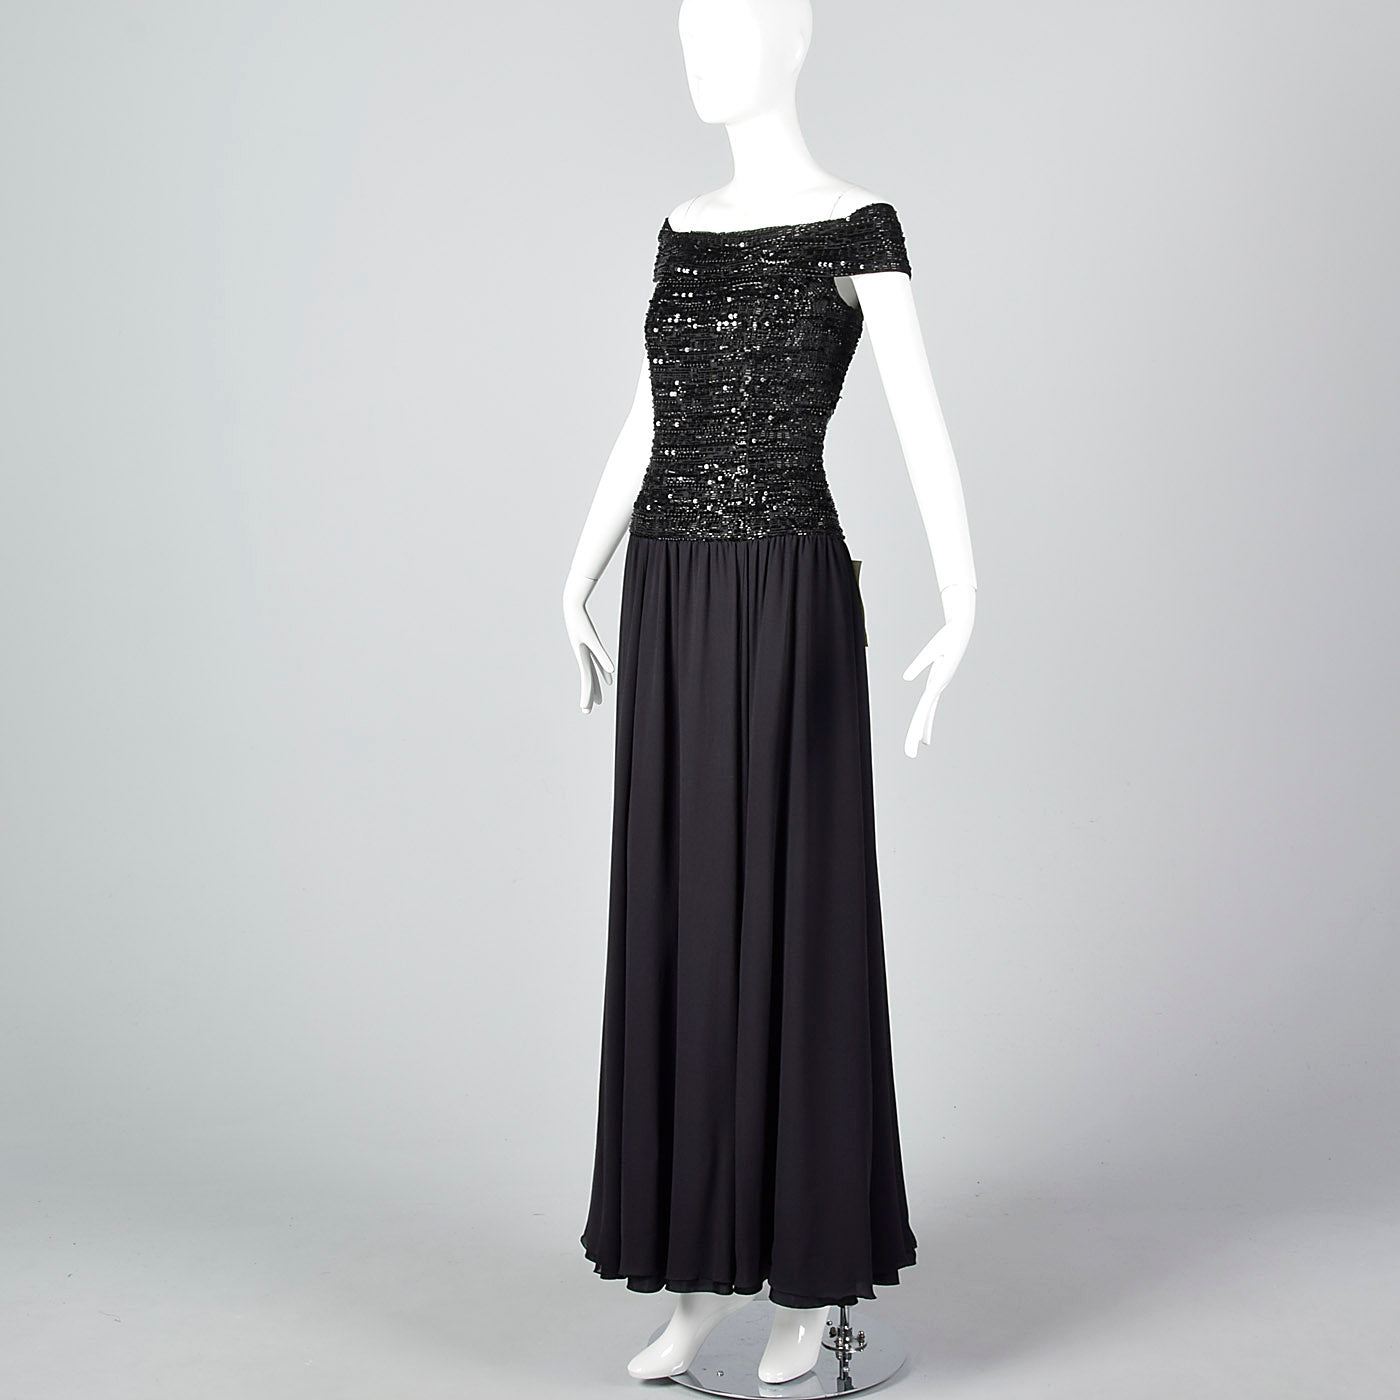 Off Shoulder Oleg Cassini Black Tie Formal Gown with Beaded Bodice and Full Skirt